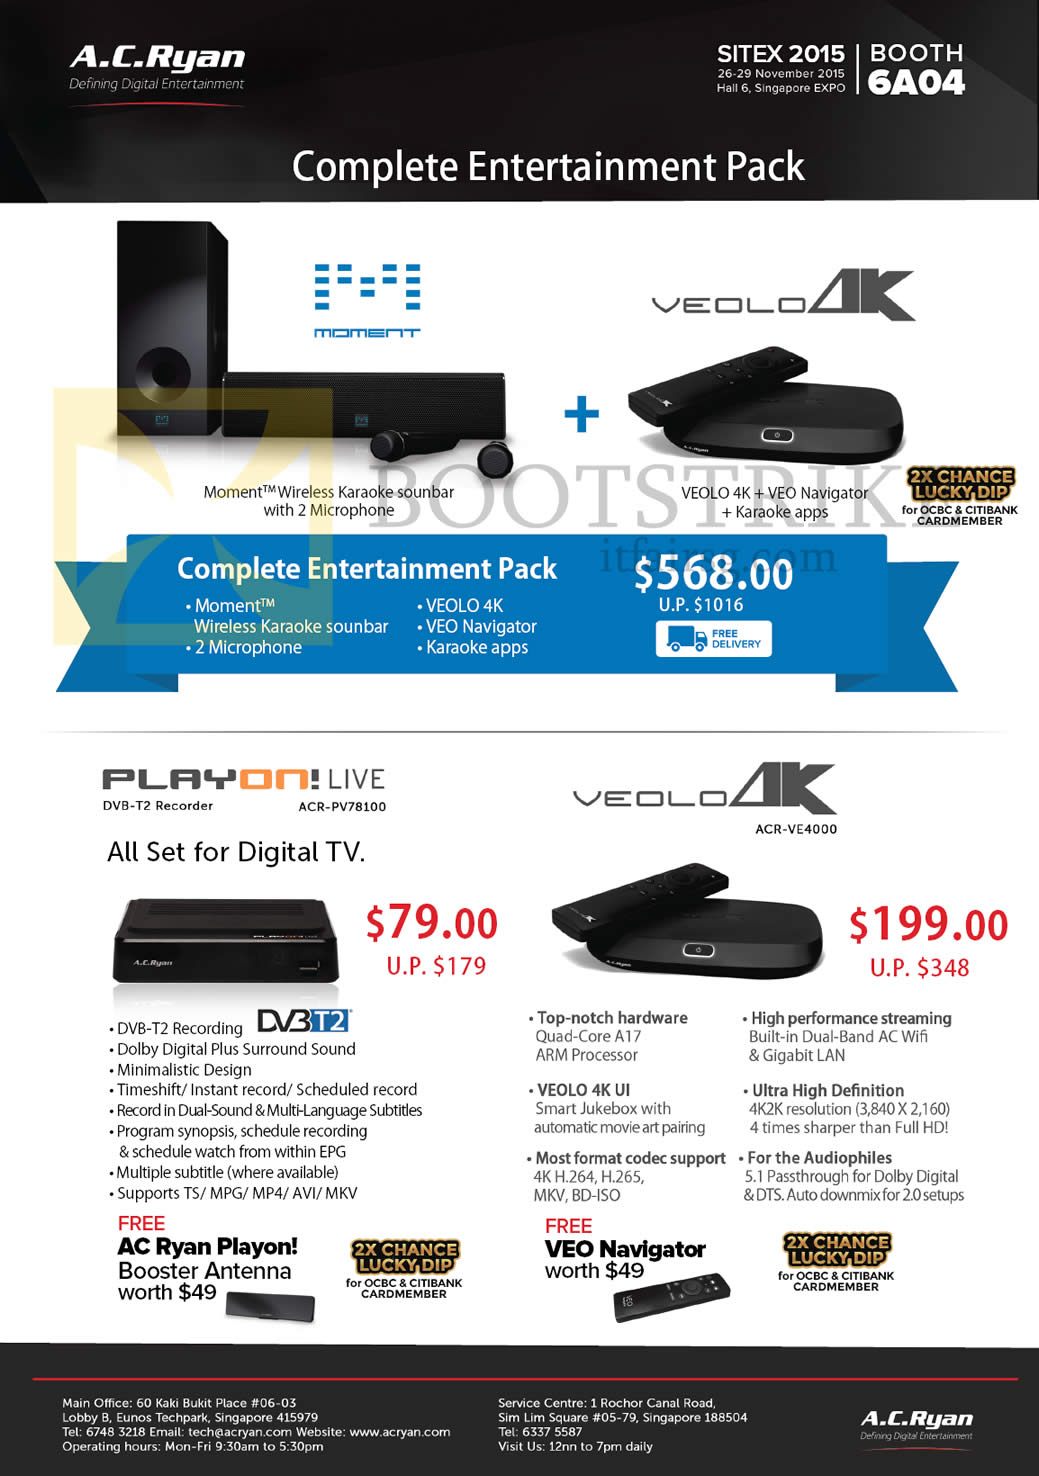 SITEX 2015 price list image brochure of AC Ryan Moment Wireless Karaoke Soundbar, Veolo Navigator, Playon Live DVB-T2 Recorder ACR-PV78100, Veolo 4K ACR-VE4000